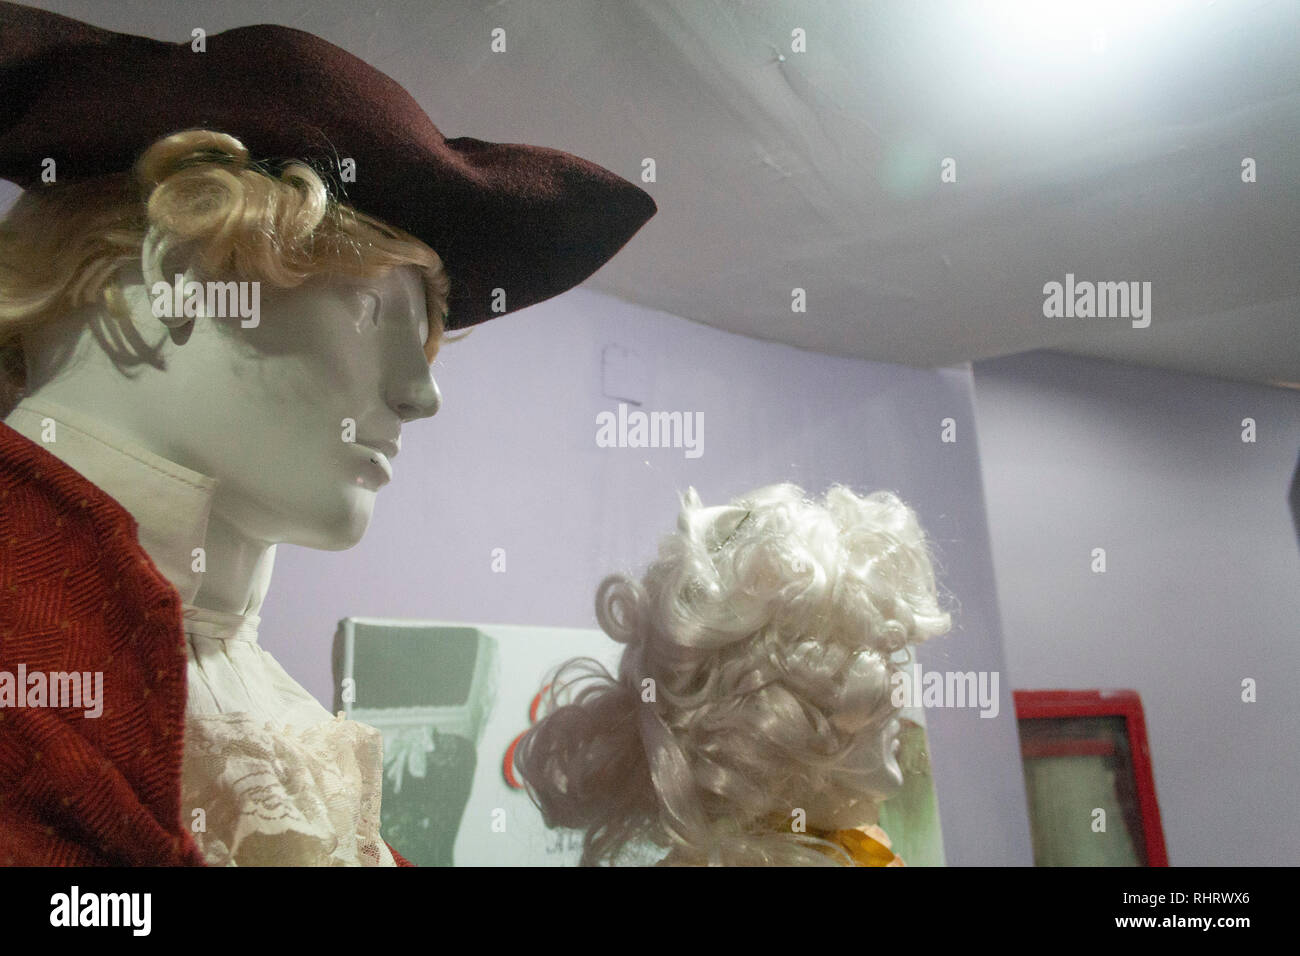 Caracas, Dtto Capital / Venezuela - 03/05/2013. Male mannequin with hat with 19th century detailCatia Theater in Catia neighborhood. - Stock Image